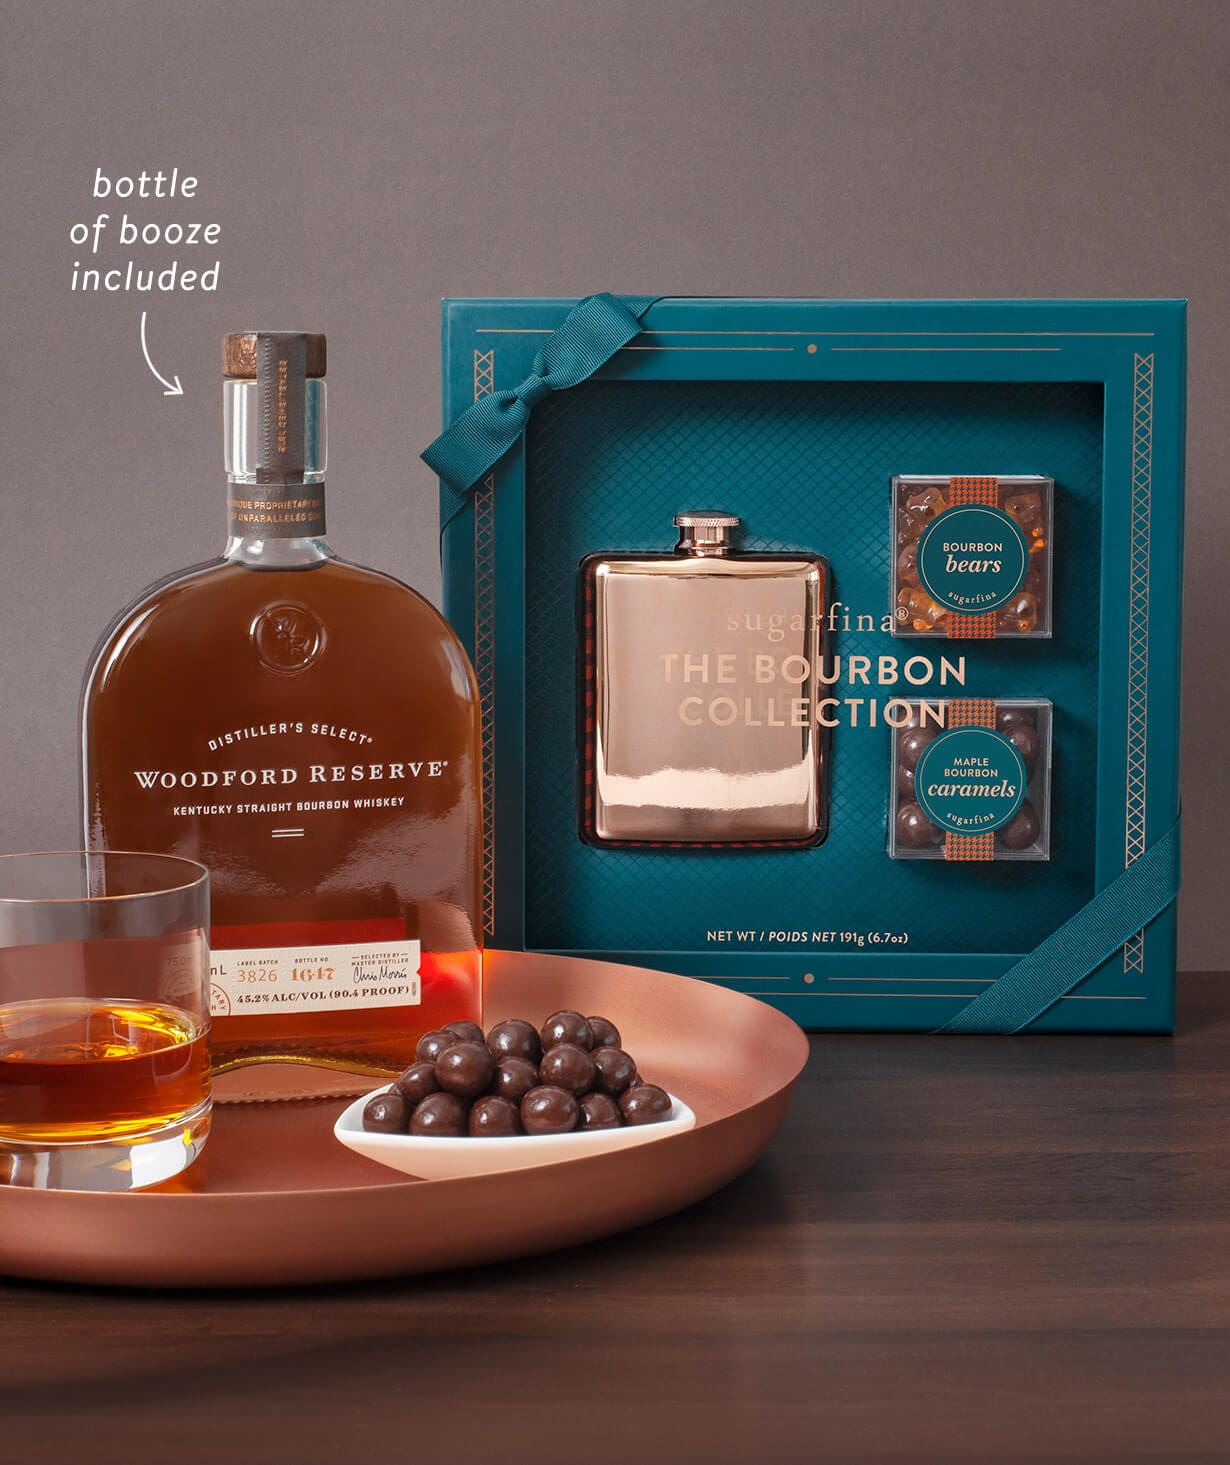 ReserveBar Bundles: pair candy with bottle of wine or spirit, shipped by ReserveBar